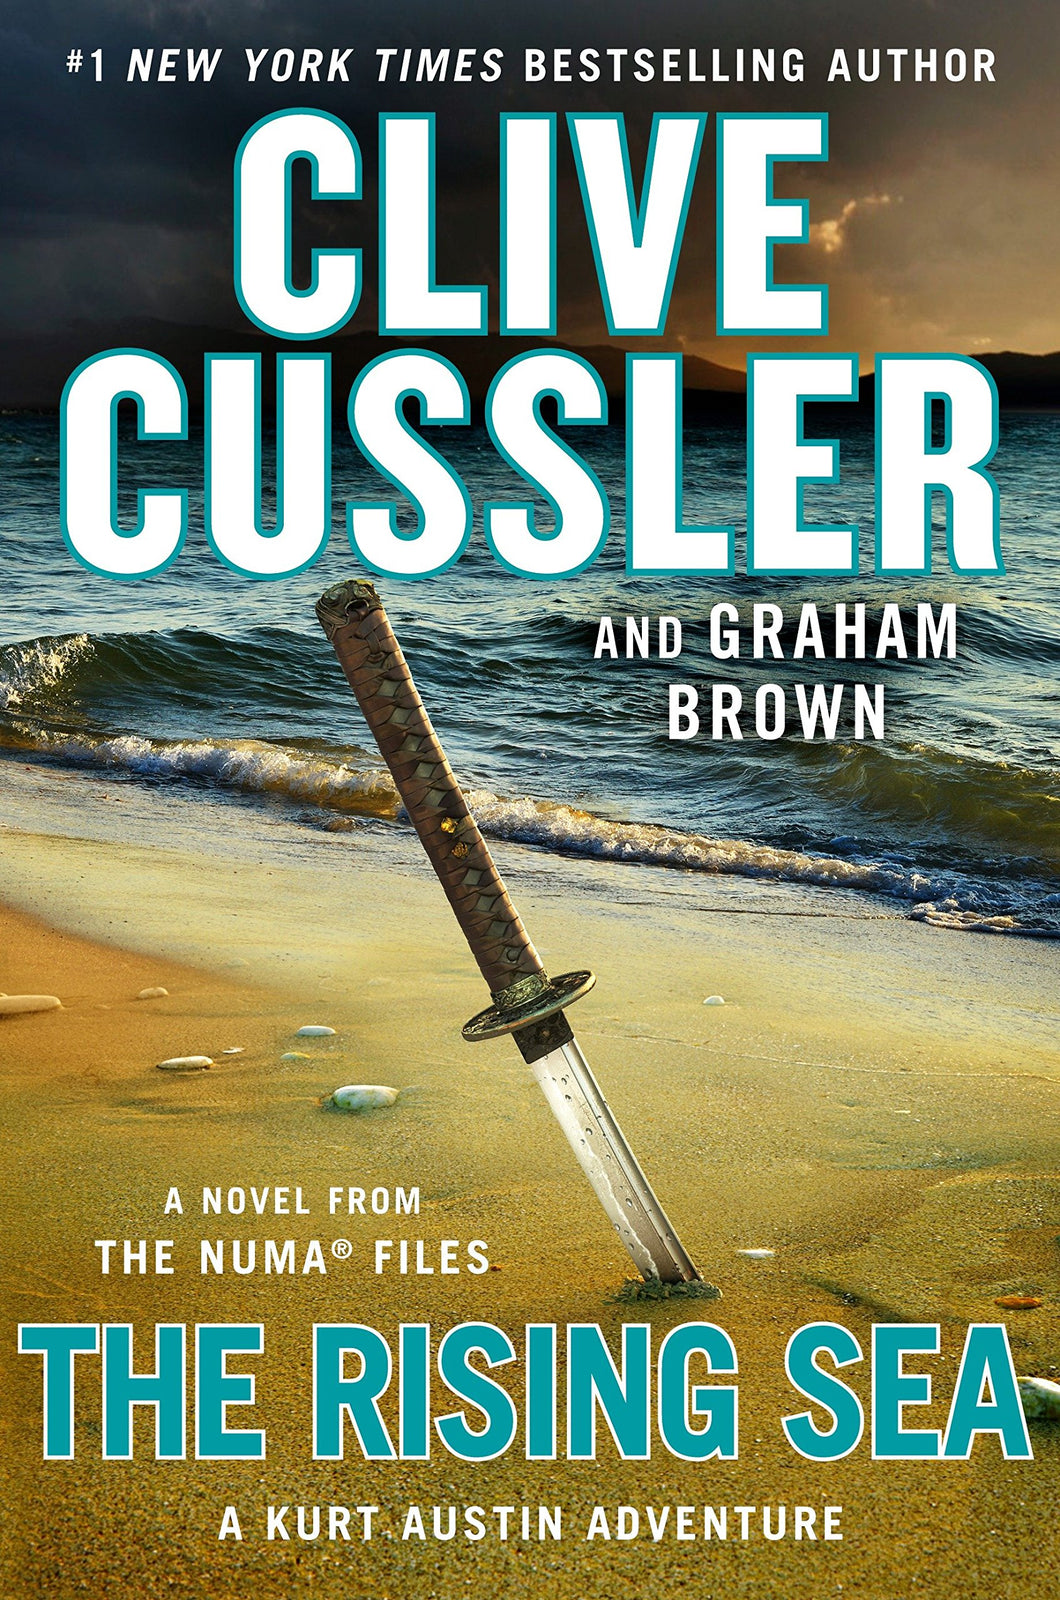 The Rising Sea The NUMA Files Series Book 15 by Clive Cussler Hardcover Hardback